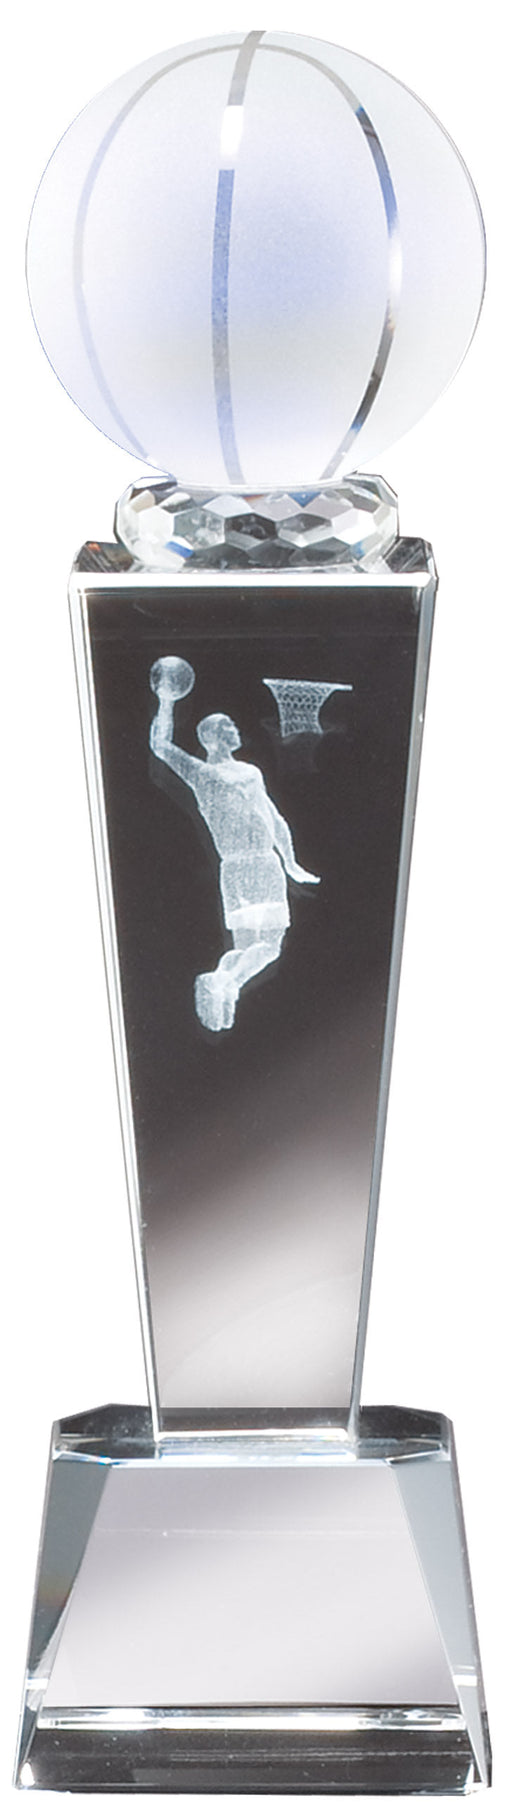 Basketball Crystal SPORT TOWER, 3D image